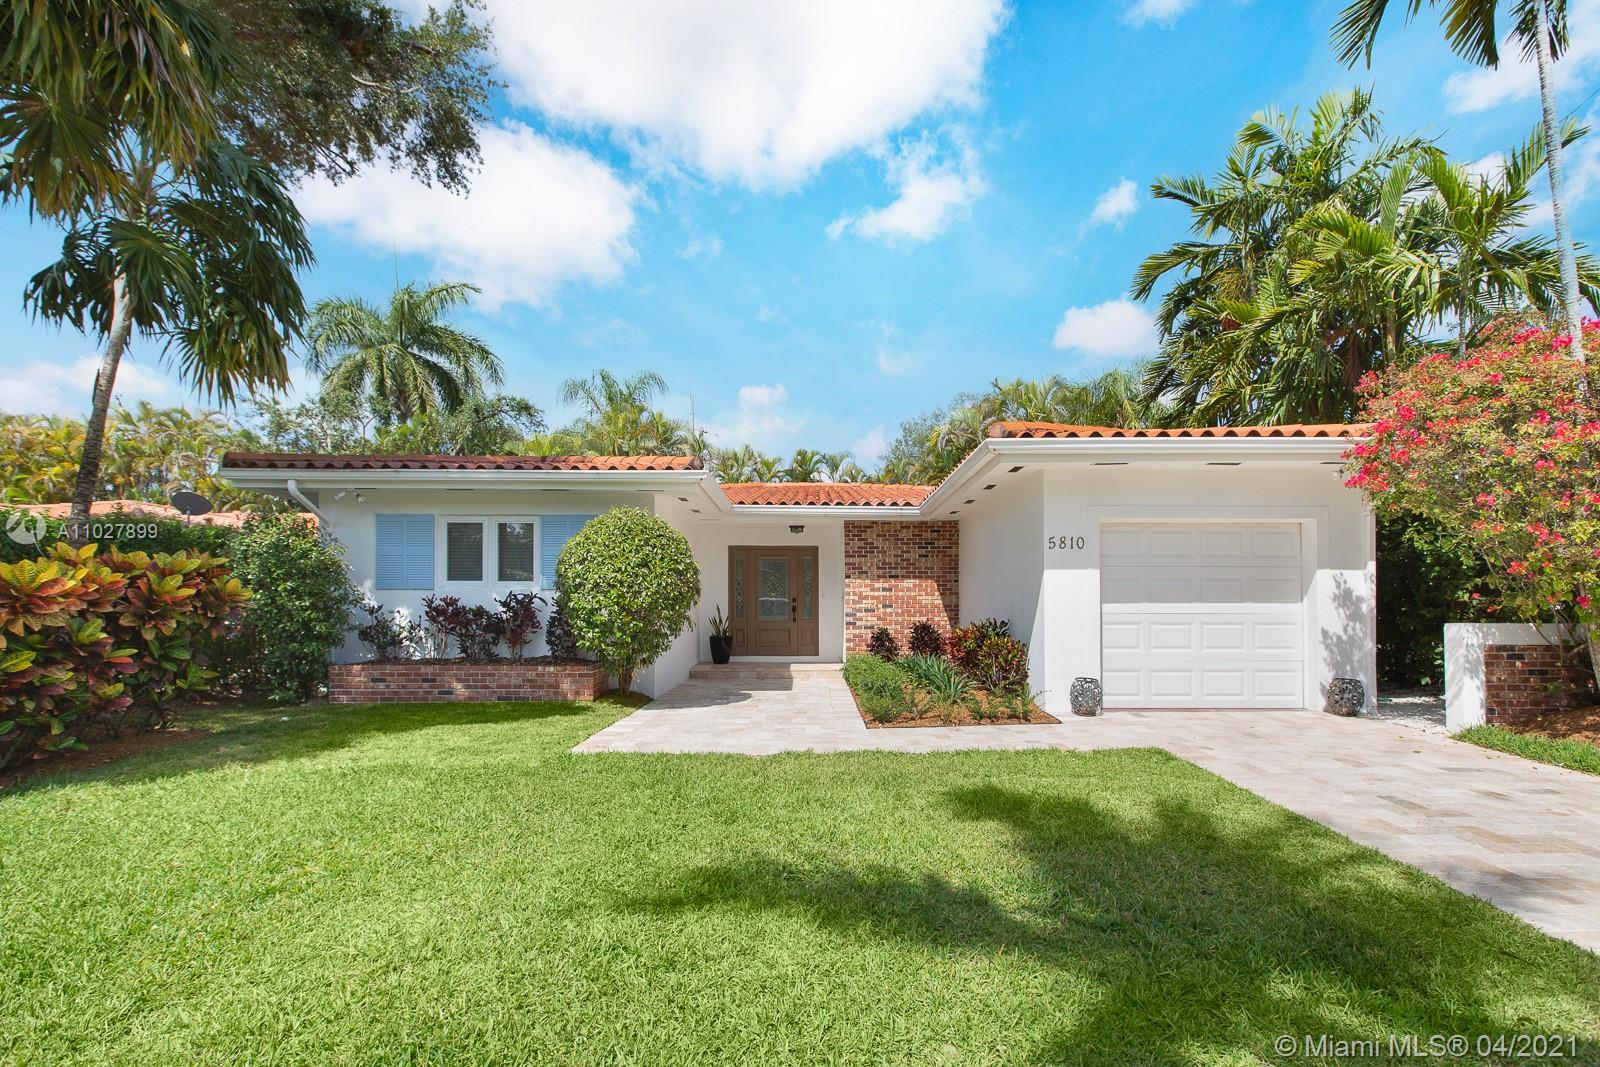 South Miami - 5810 Leonardo St, Coral Gables, FL 33146